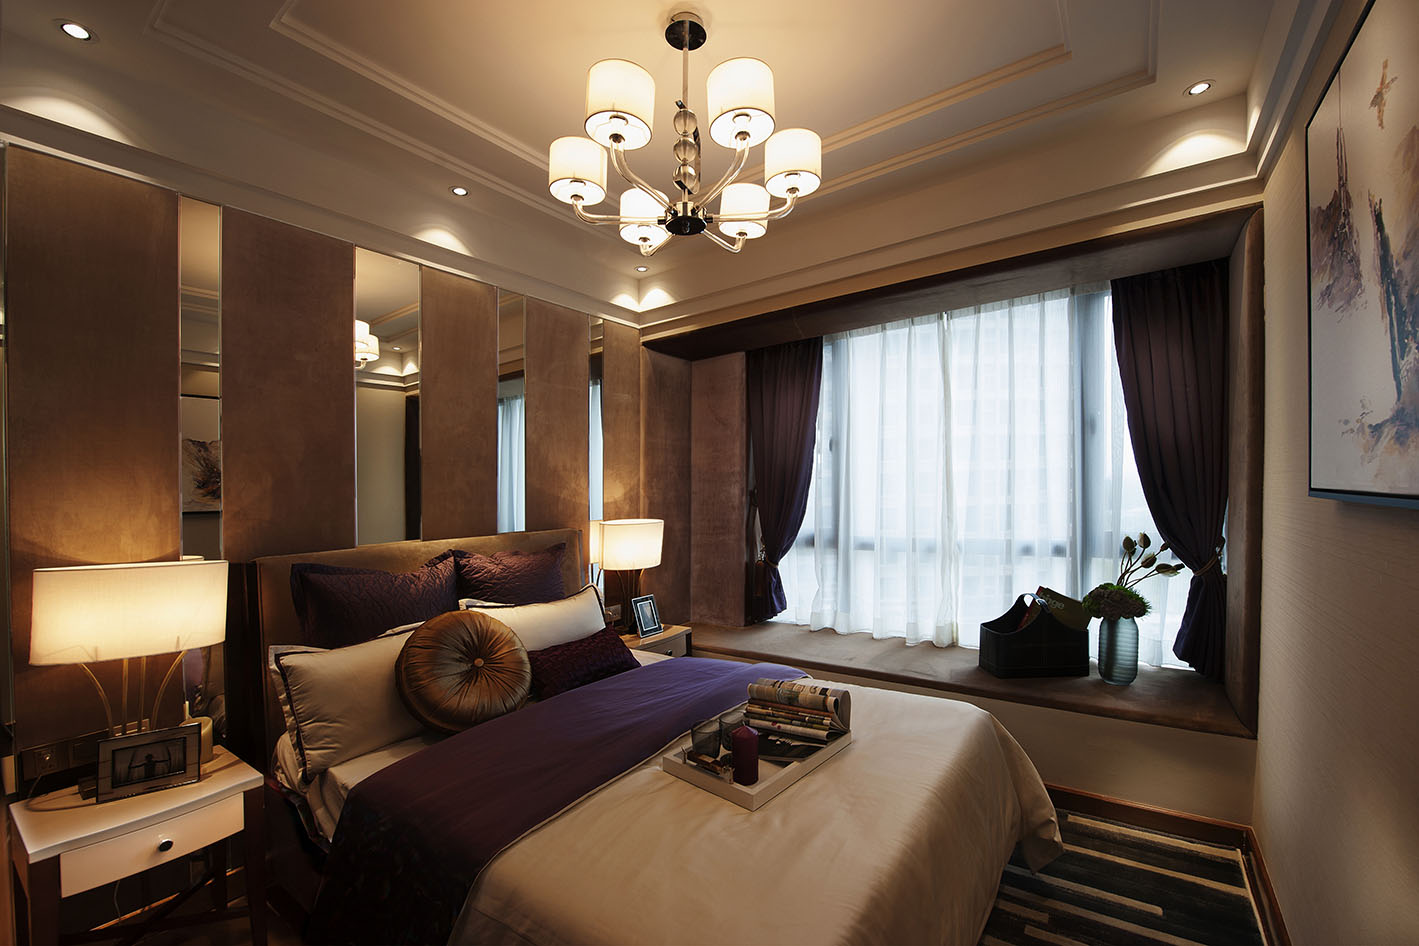 Architecturalphotographerscarboroughbeautifulbedroomsperfect - Beautiful bedrooms perfect for lounging all day